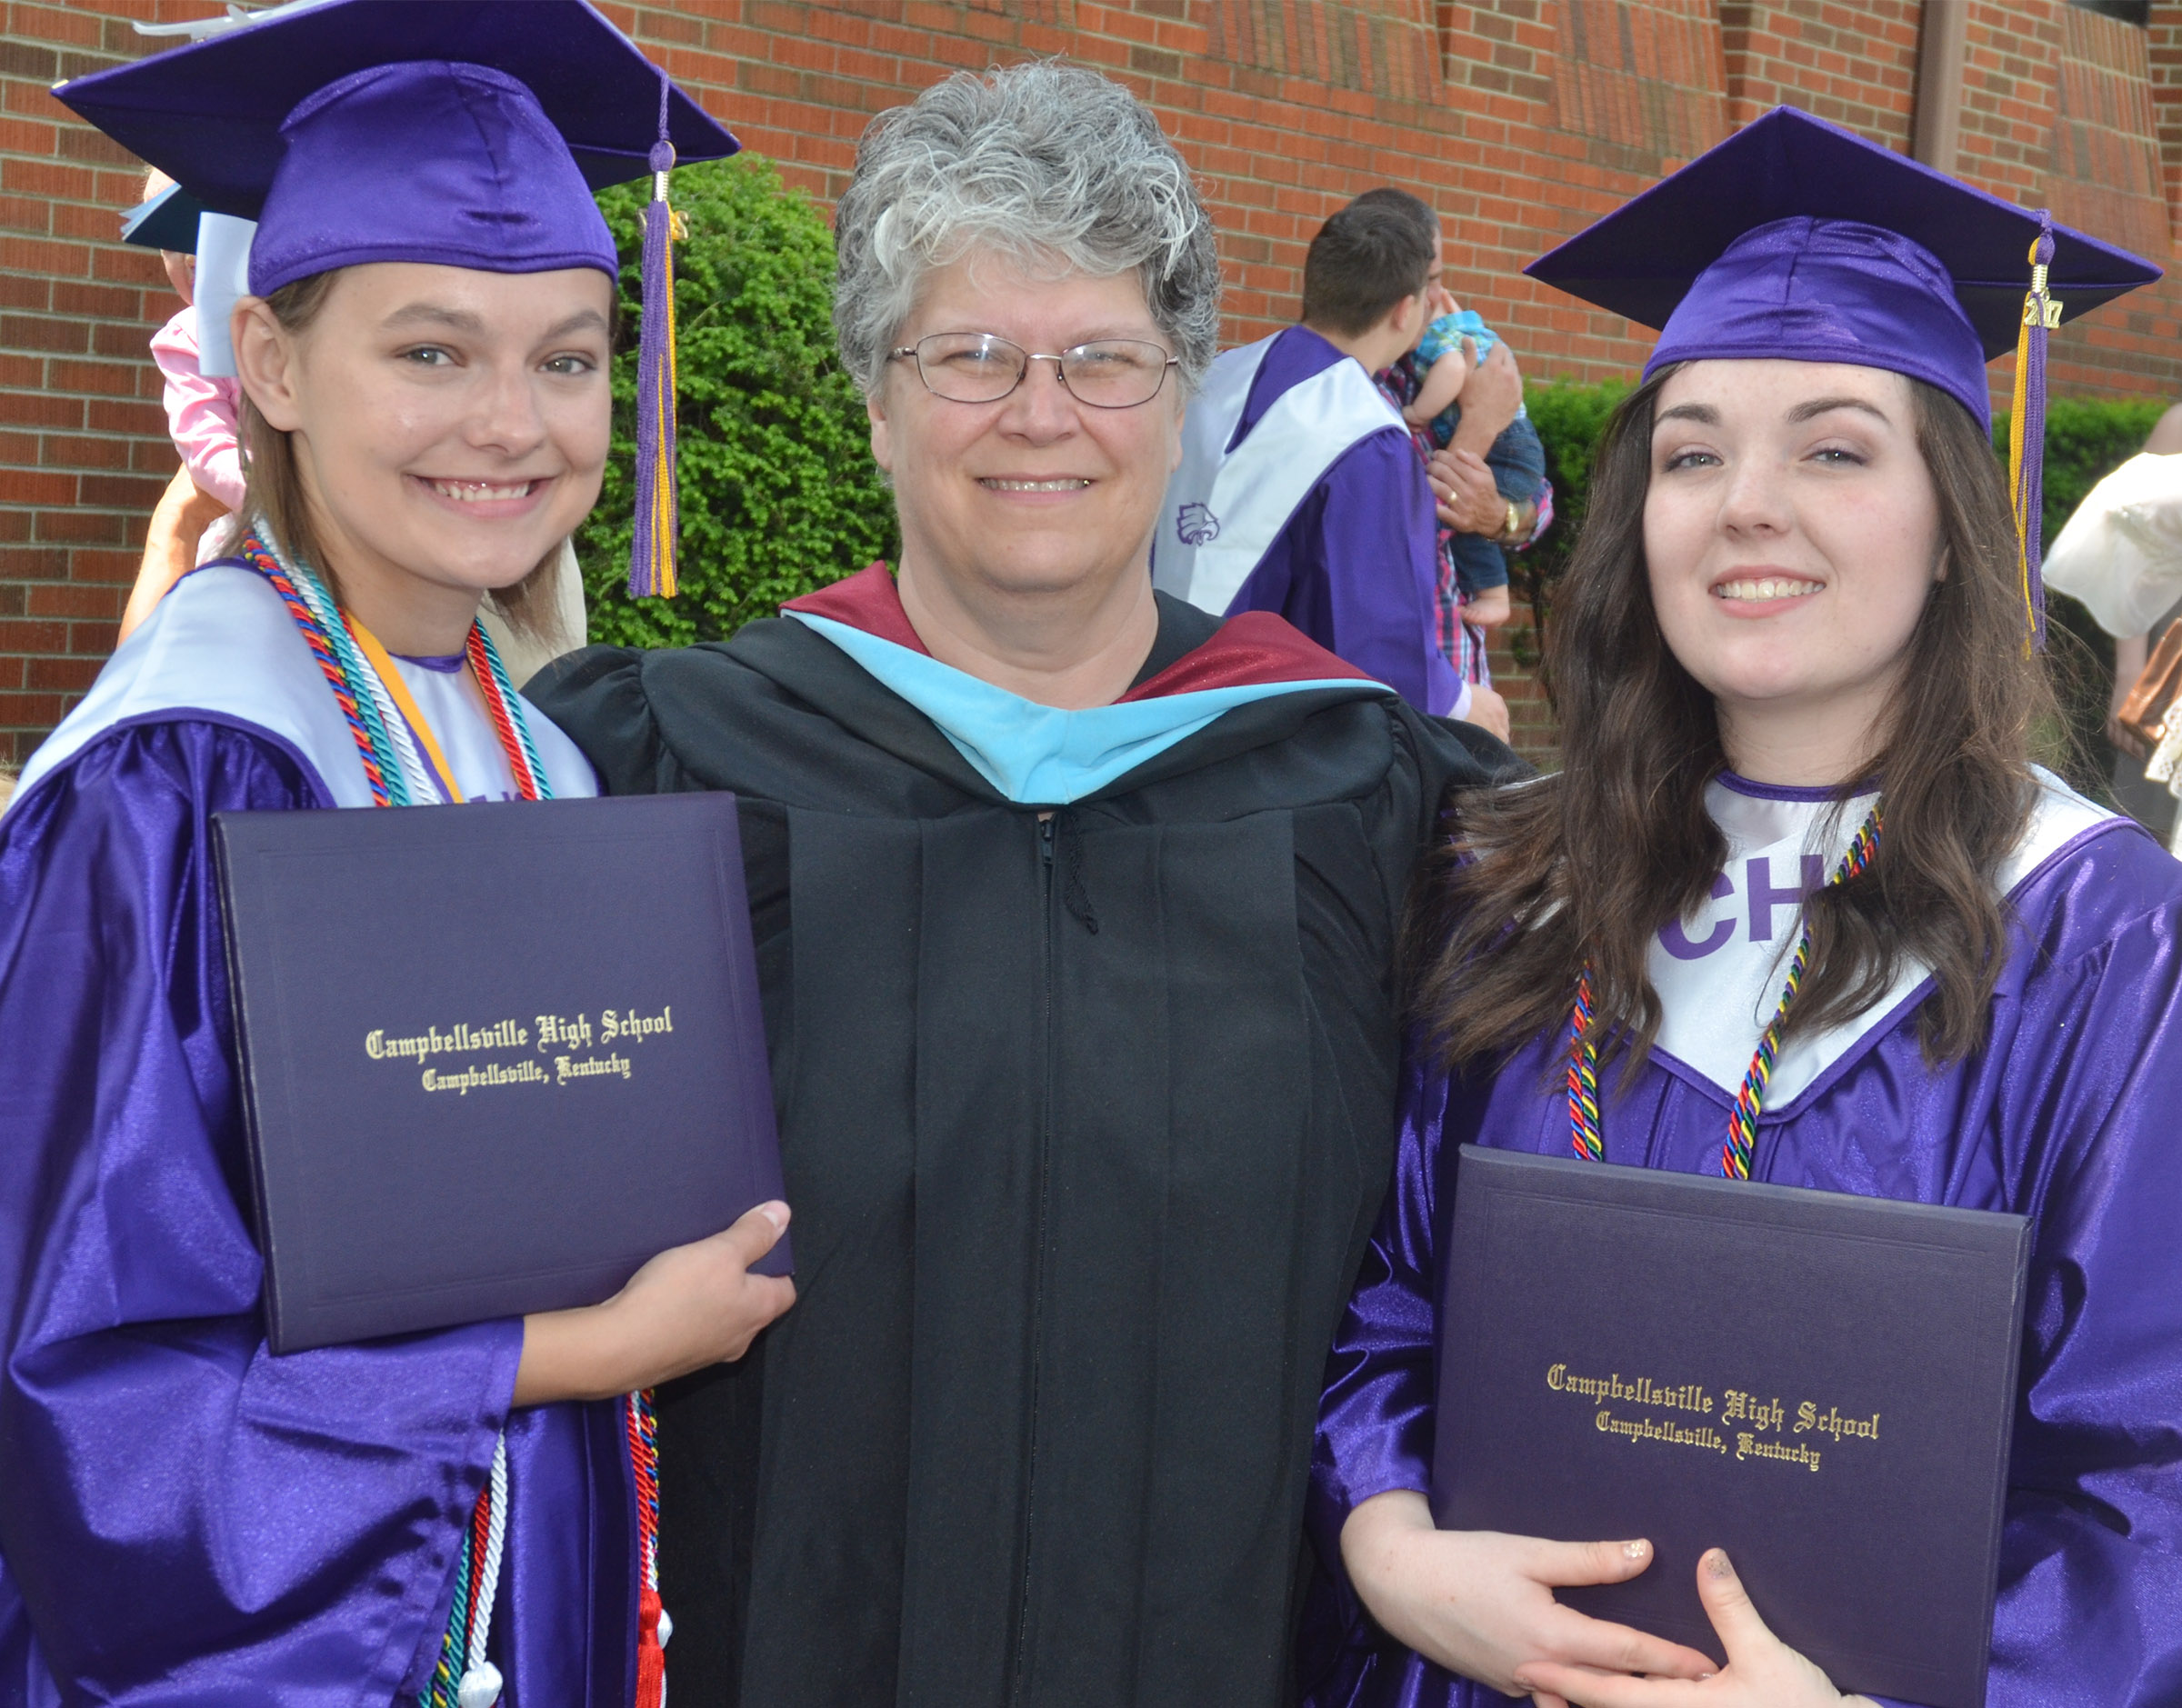 CHS art teacher Jo Ann Harris poses for a photo with two of her students who graduated, Kyrsten Hill, at left, and Tiffany Stagner.